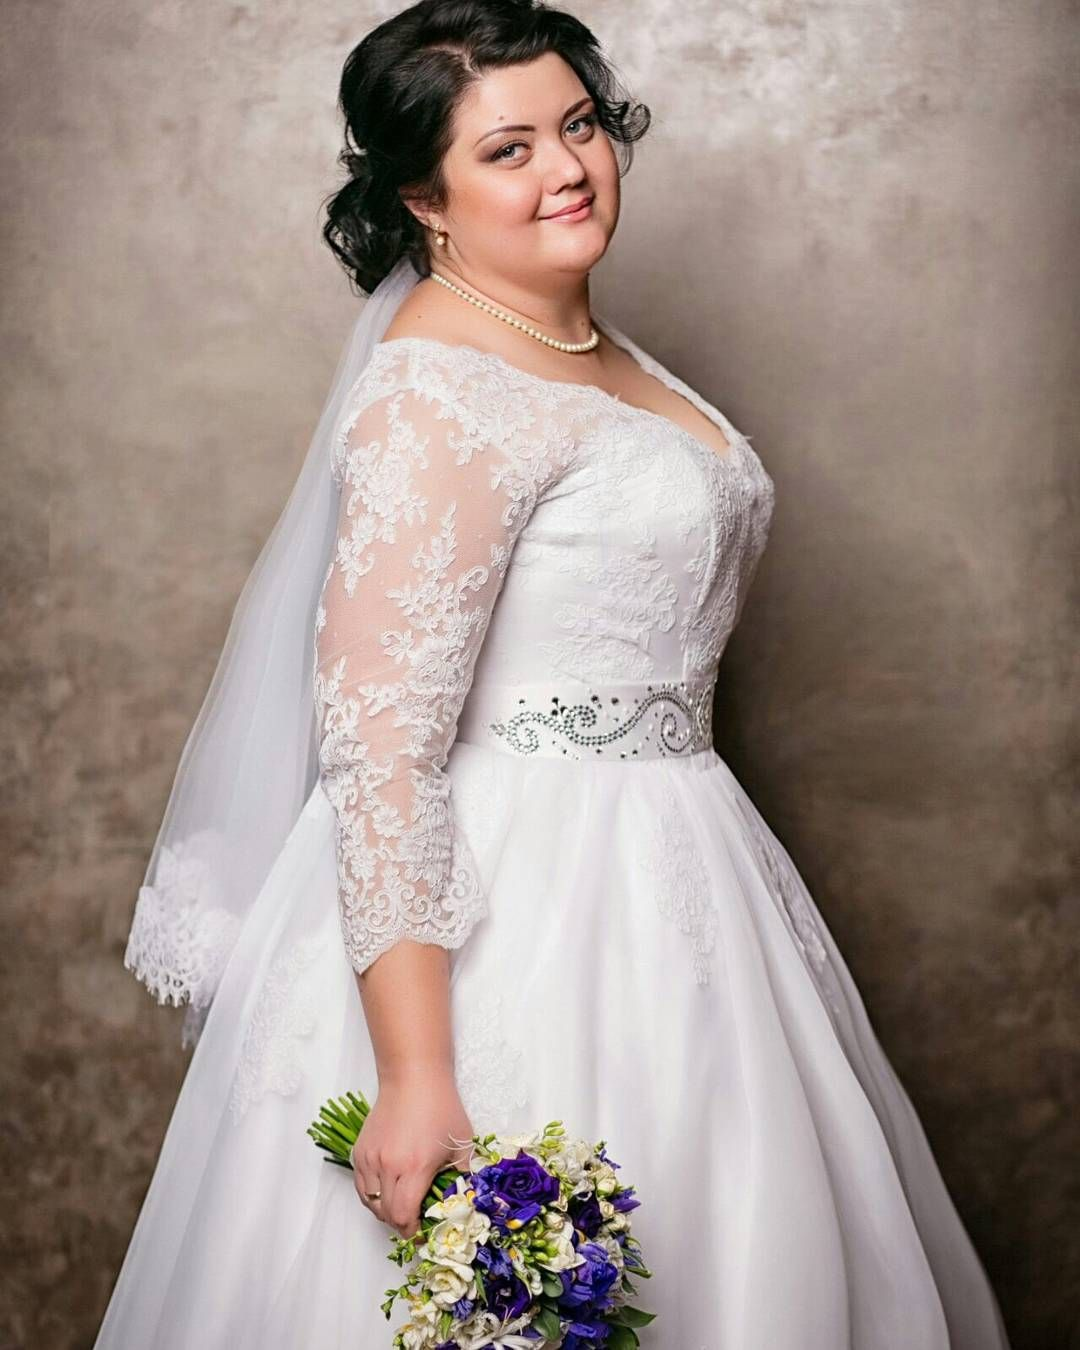 Affordable Custom Plus Size Wedding Gowns From The Usa Wedding Dresses Plus Size Plus Size Wedding Gowns Dresses For Big Bust [ 1350 x 1080 Pixel ]